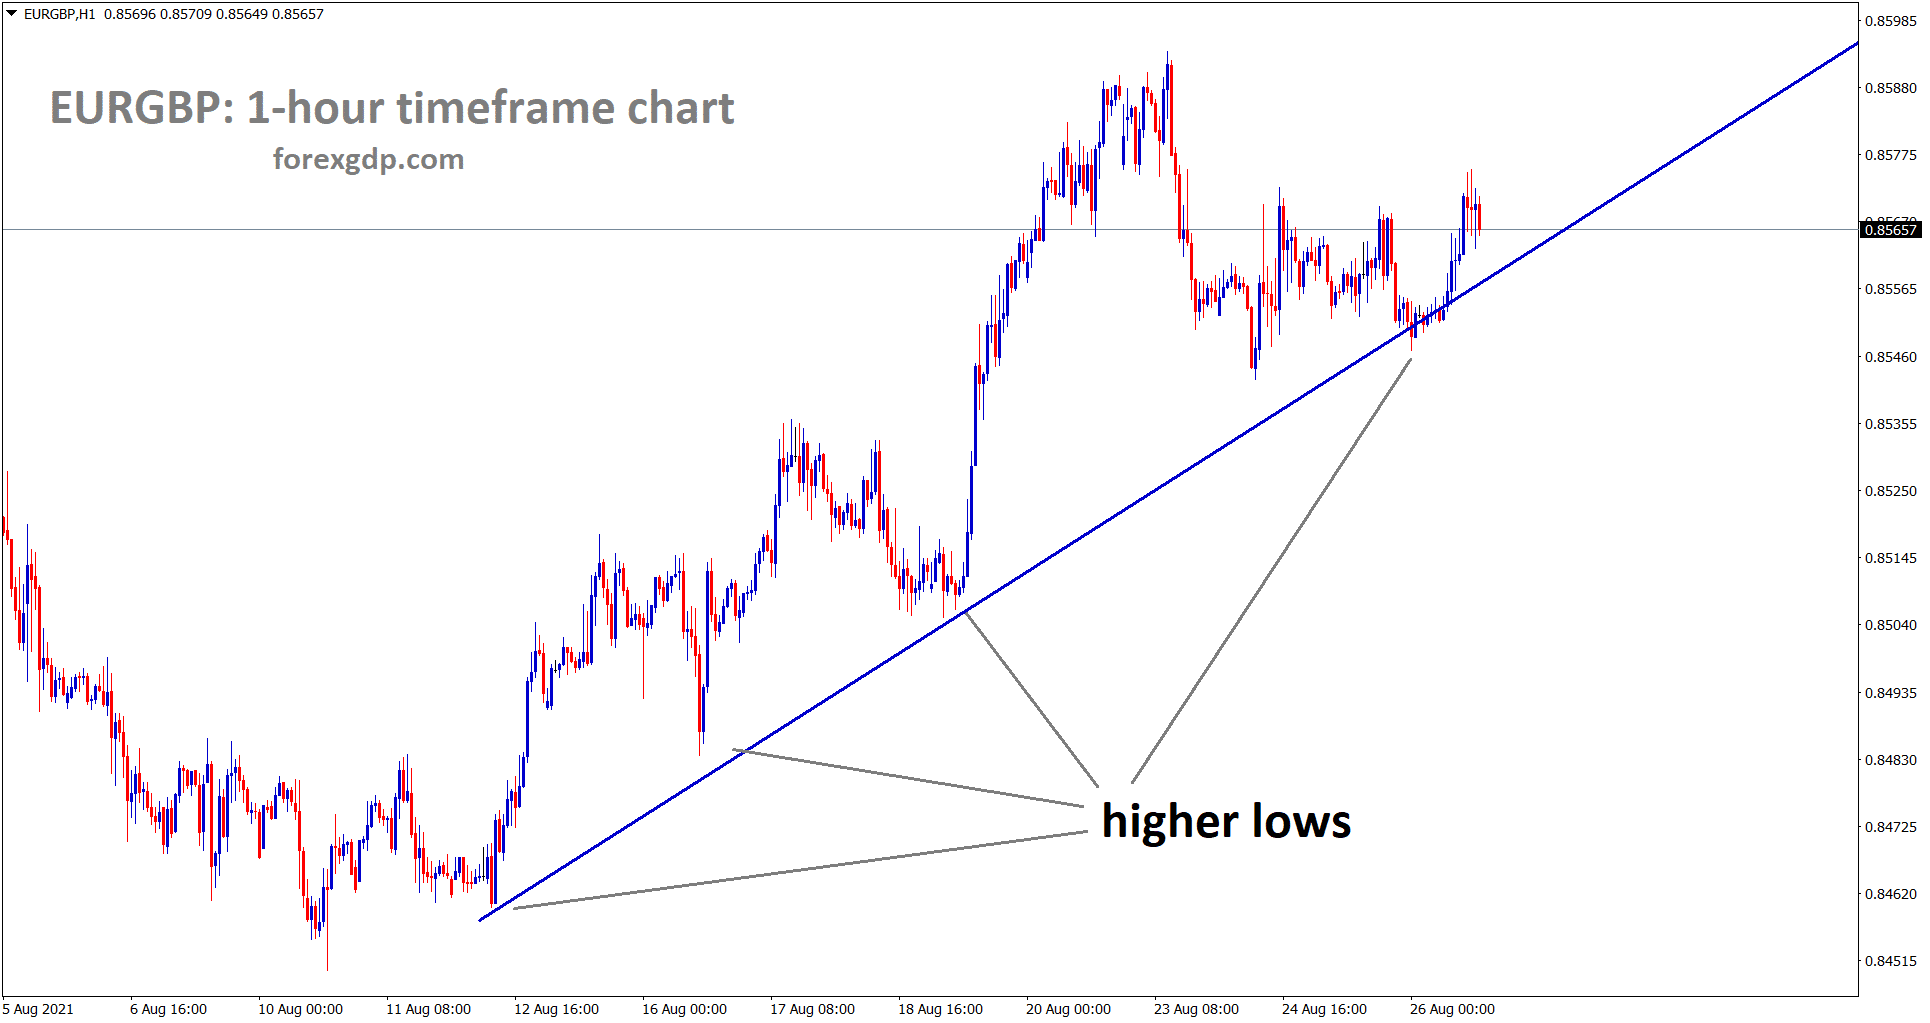 EURGBP is moving in an uptrend forming higher lows continuously